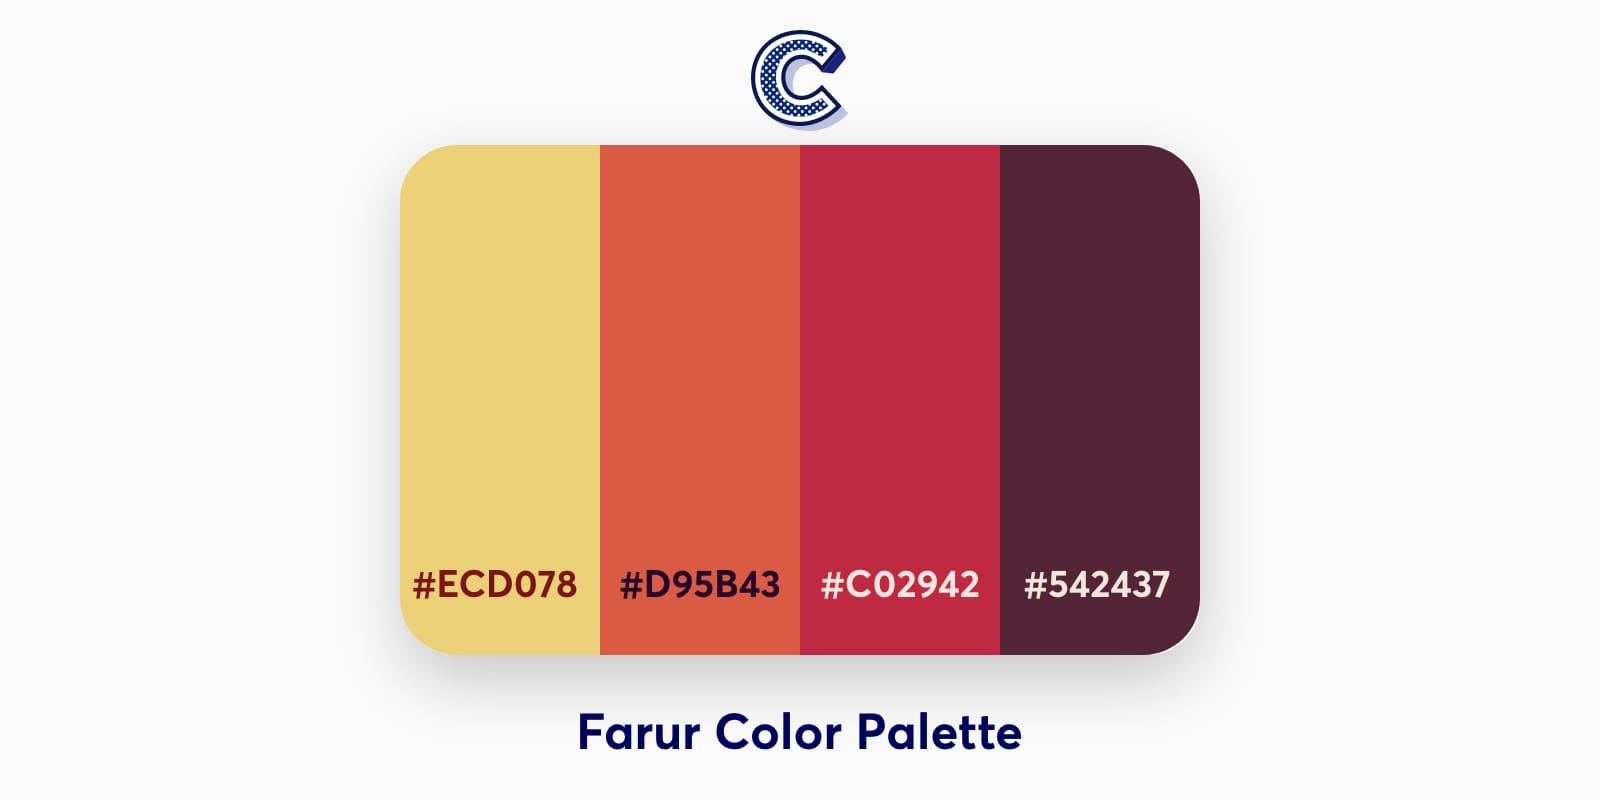 the featured image of farur color palette